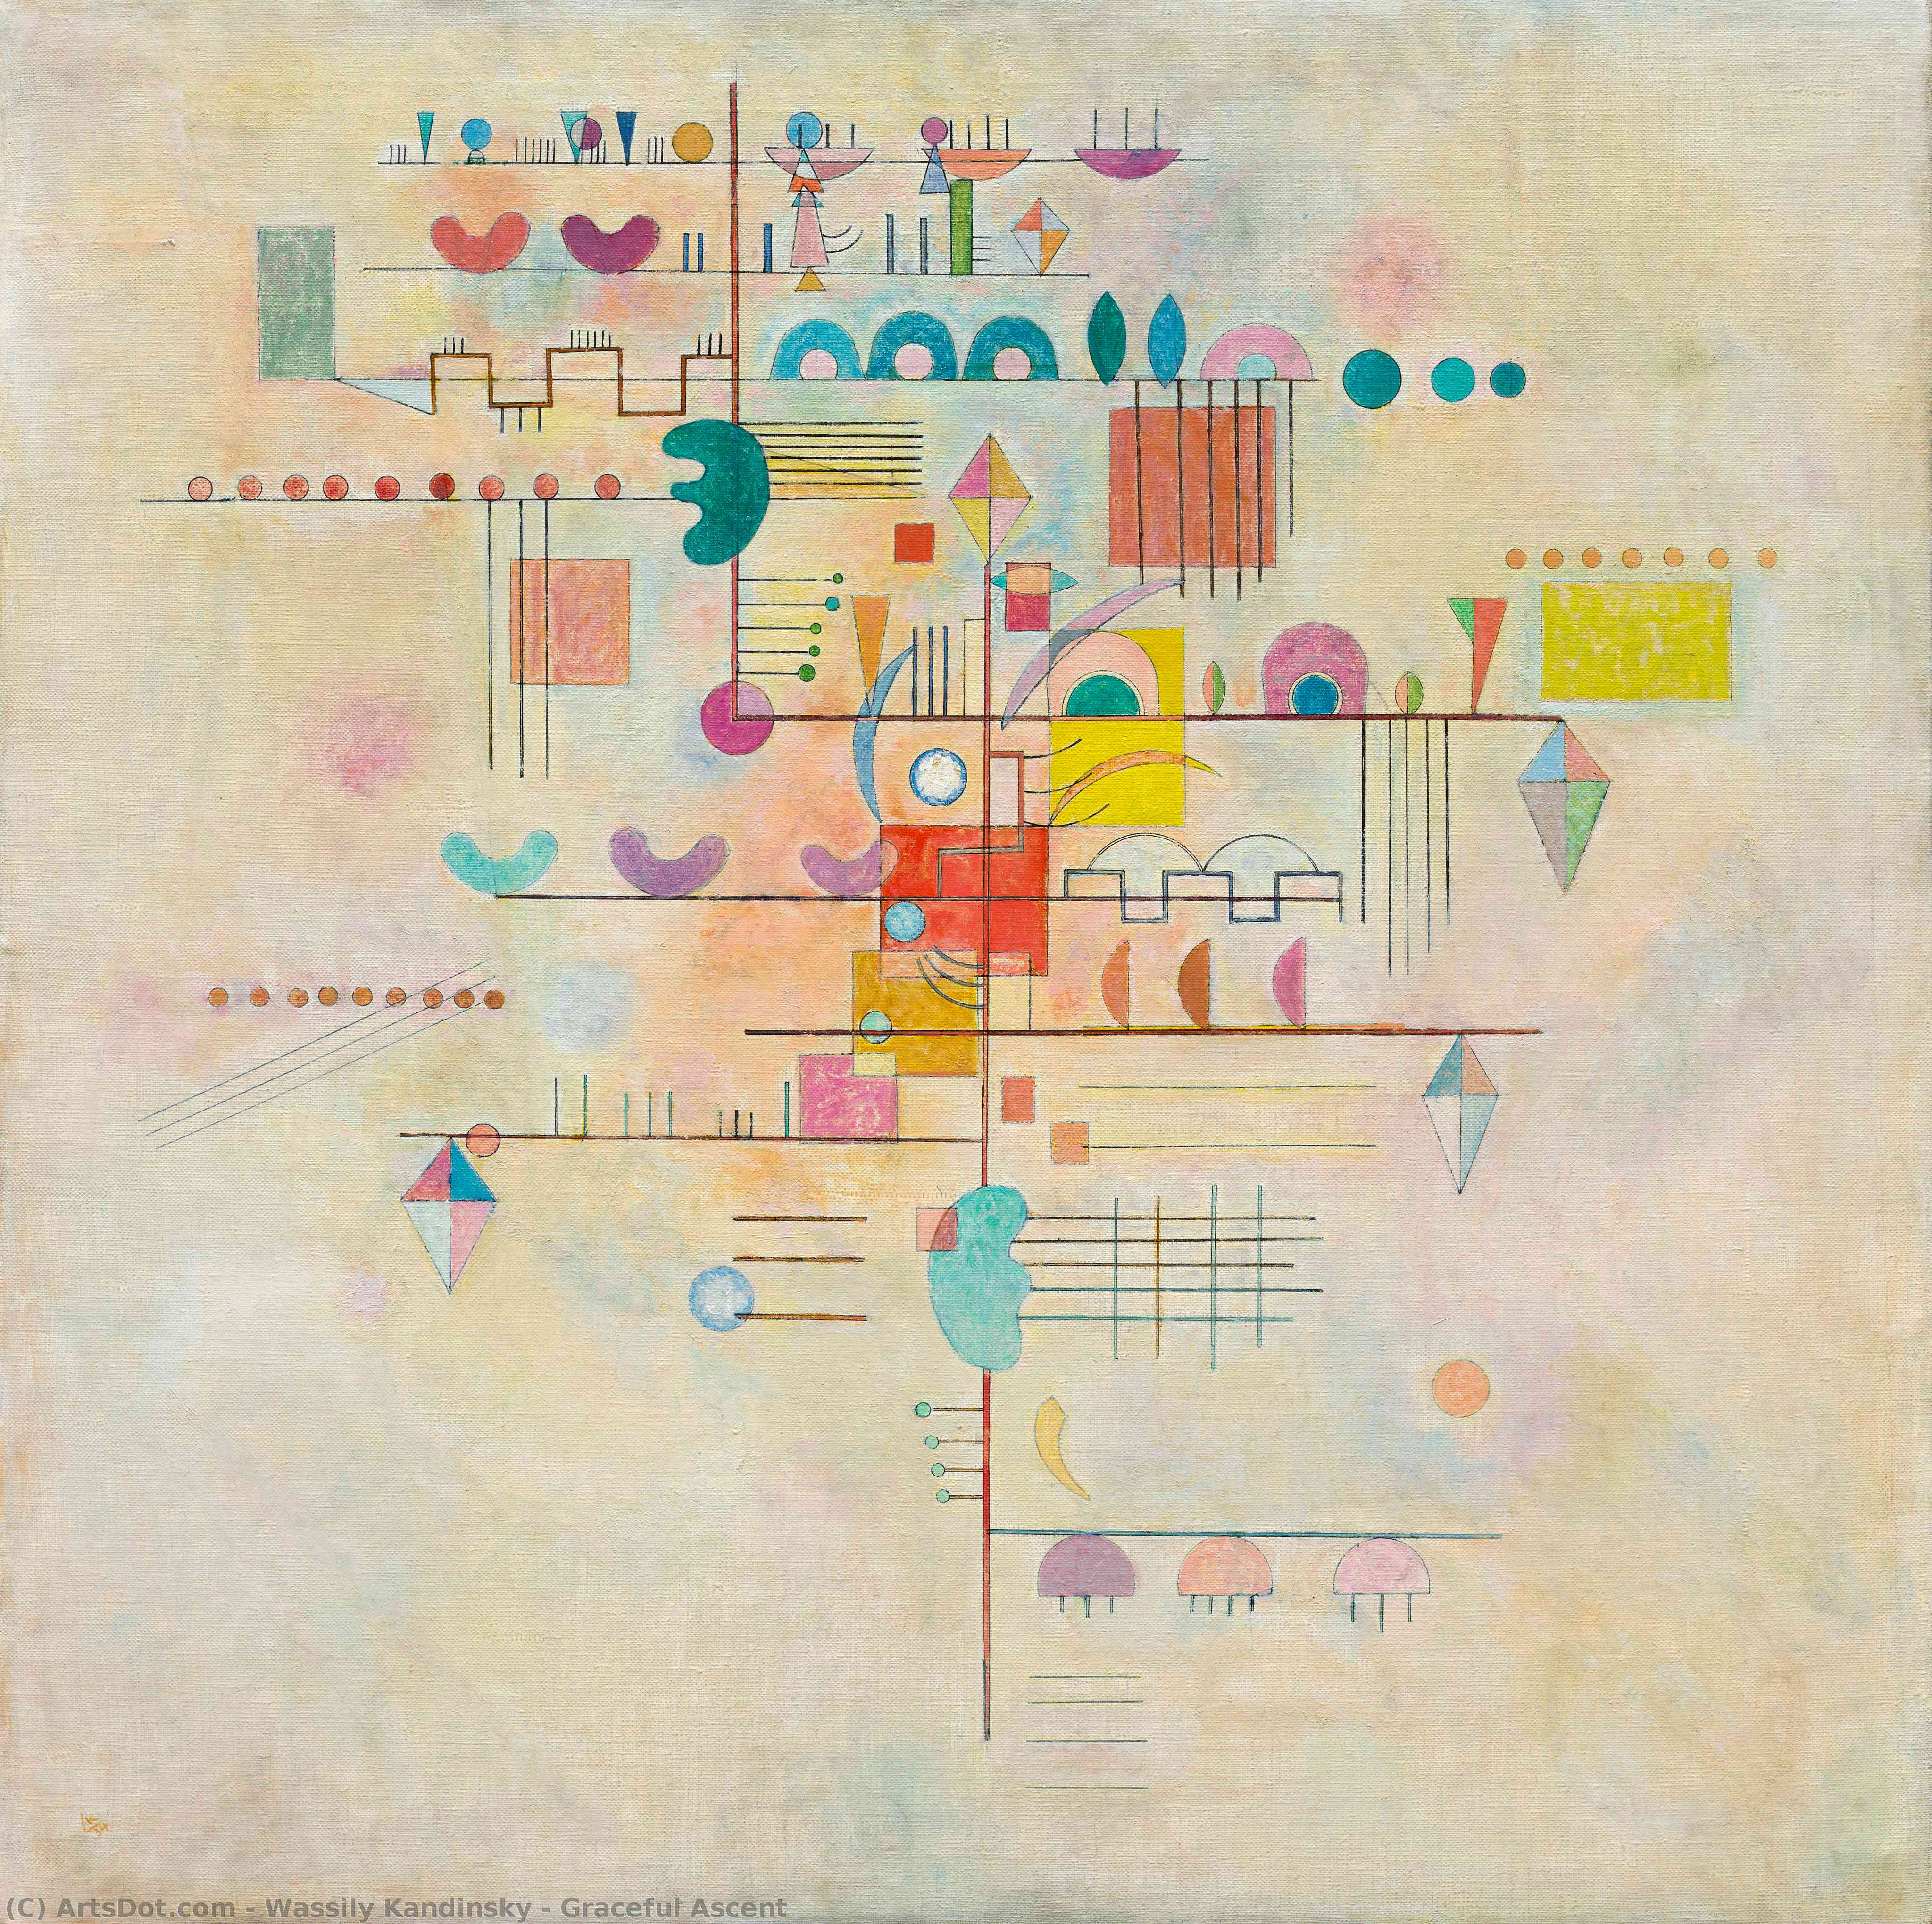 Wikioo.org - The Encyclopedia of Fine Arts - Painting, Artwork by Wassily Kandinsky - Graceful Ascent